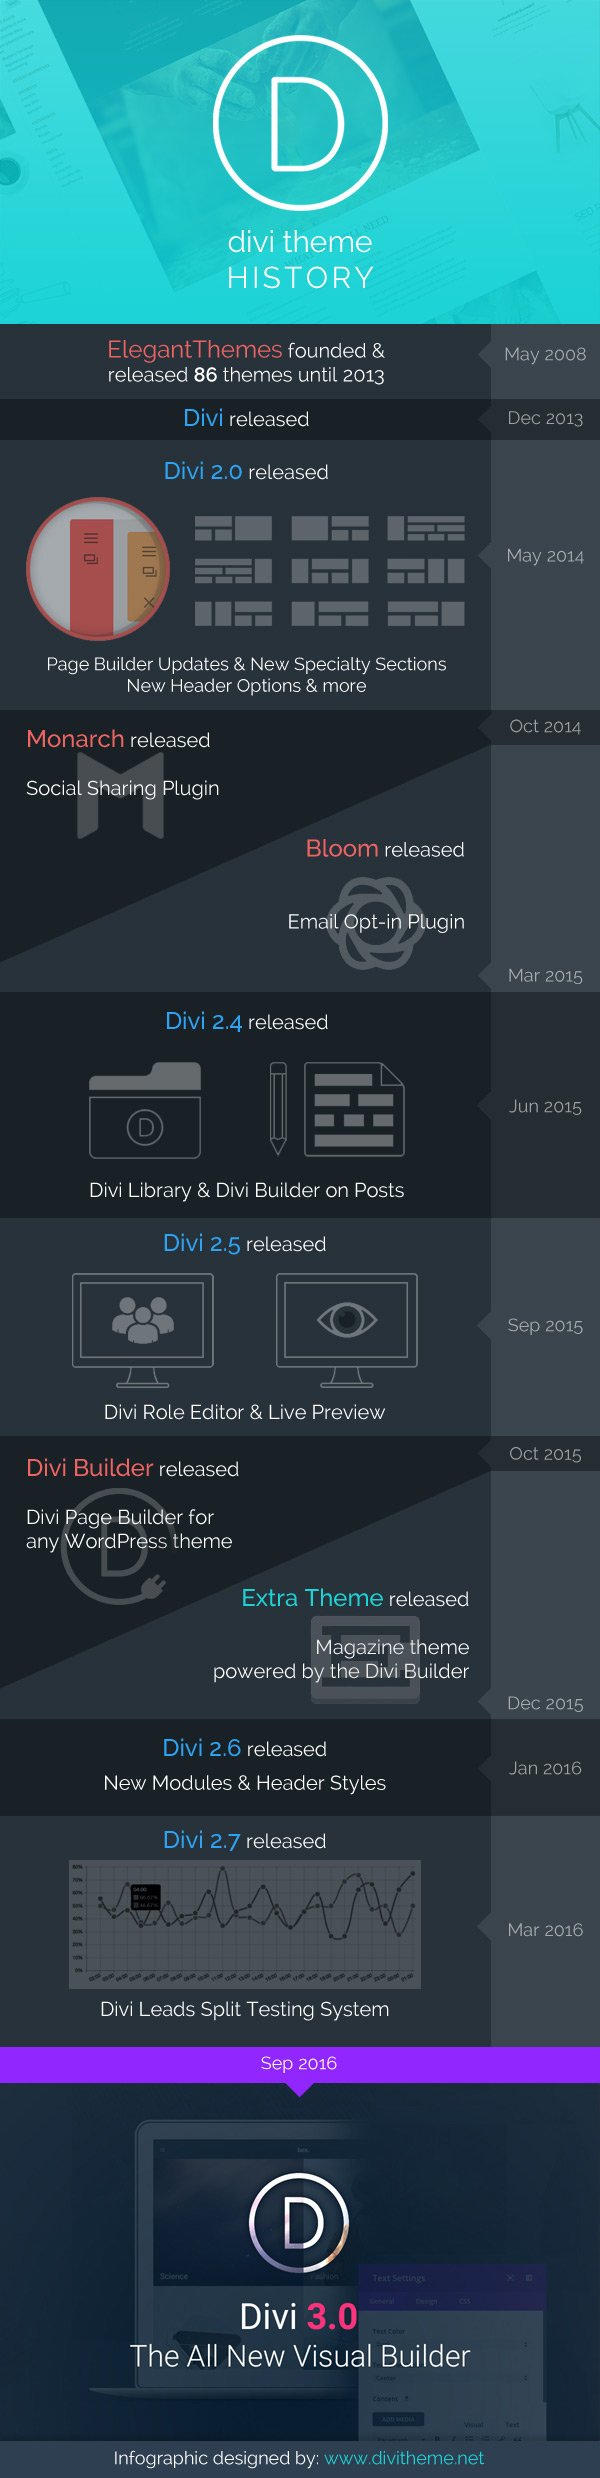 A Brief History of Divi